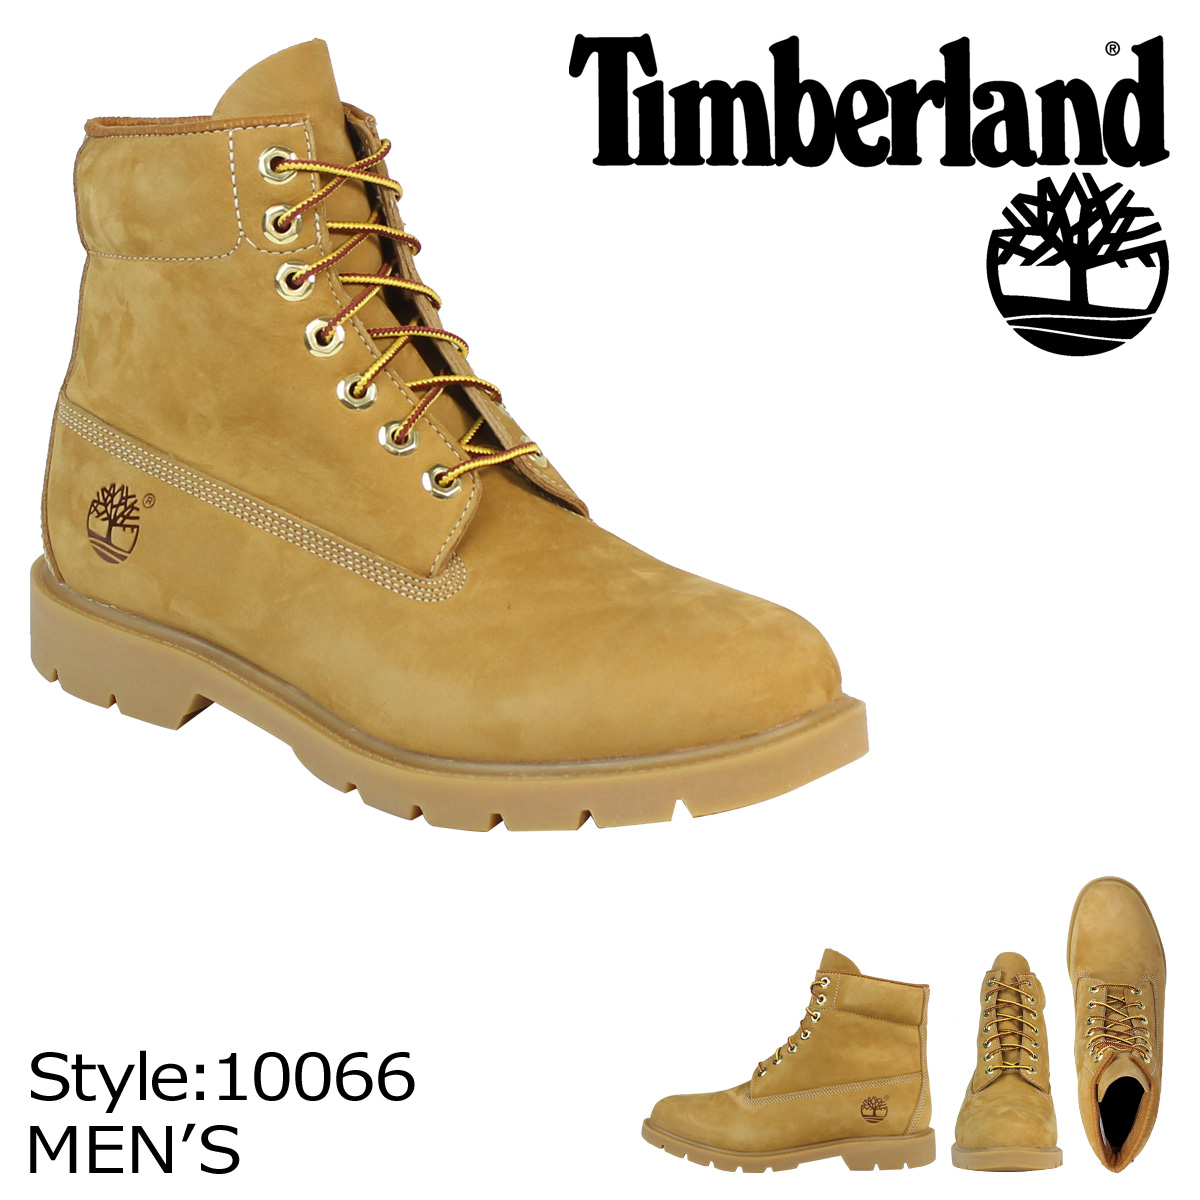 Timberland Timberland 6INCH 6 inches boots BASIC WATERPROOF BOOT 10,066W ワイズウィートメンズ